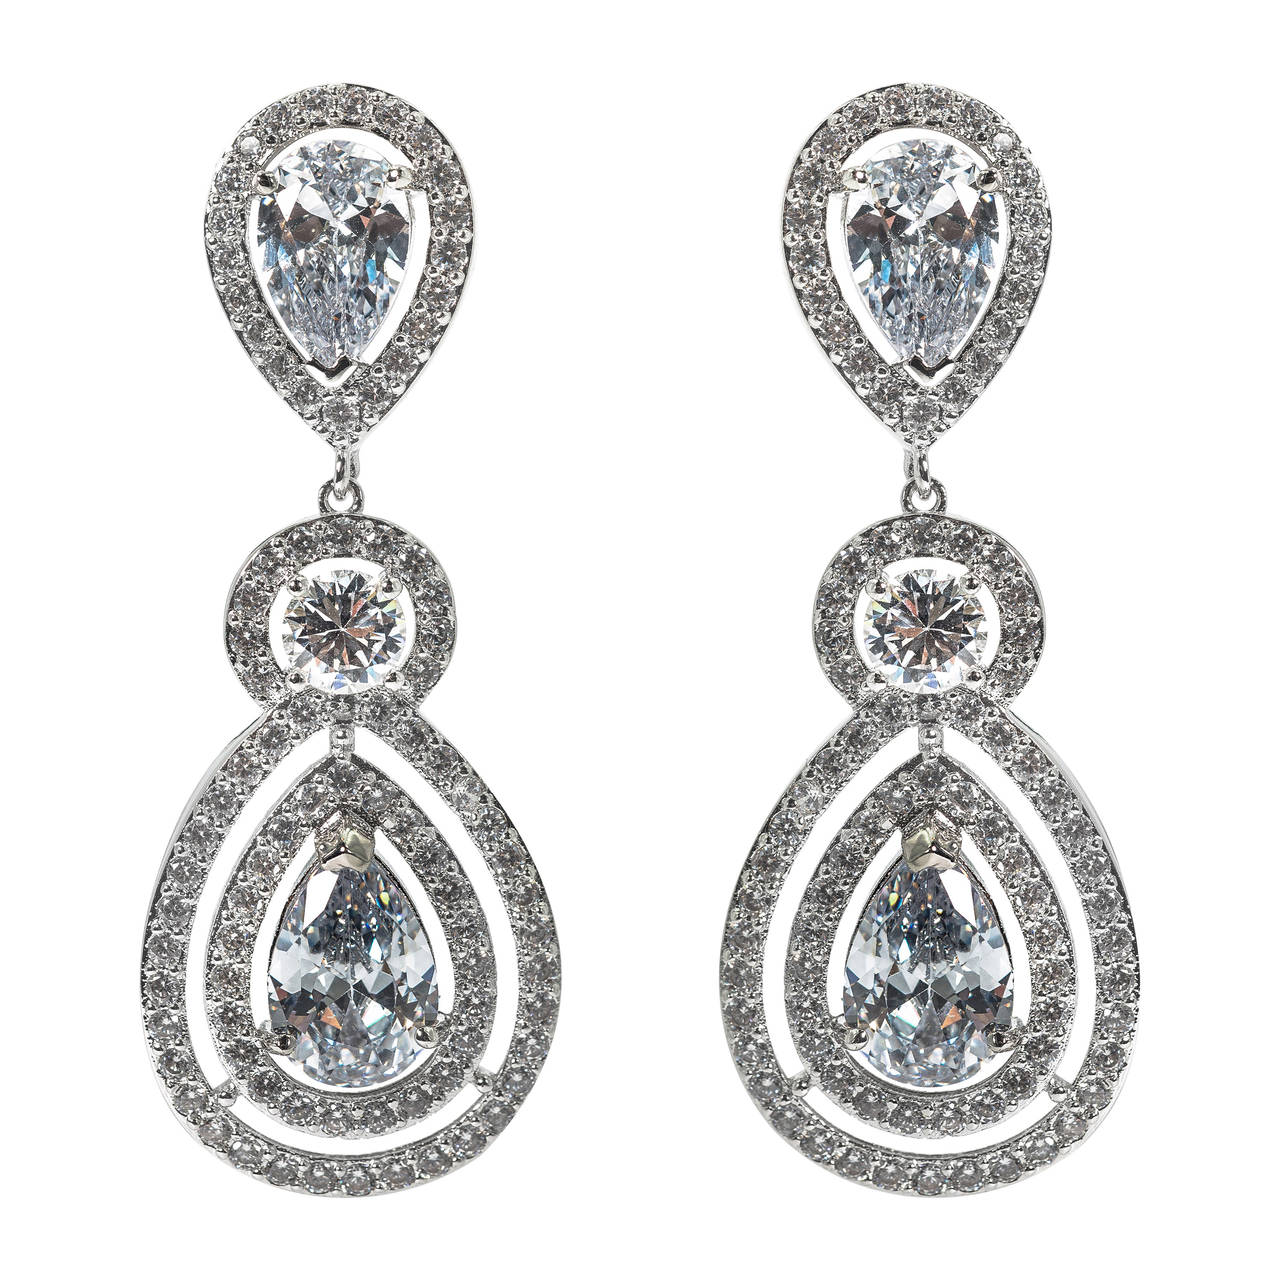 shimmering faux diamond pear drop earrings for sale at 1stdibs. Black Bedroom Furniture Sets. Home Design Ideas